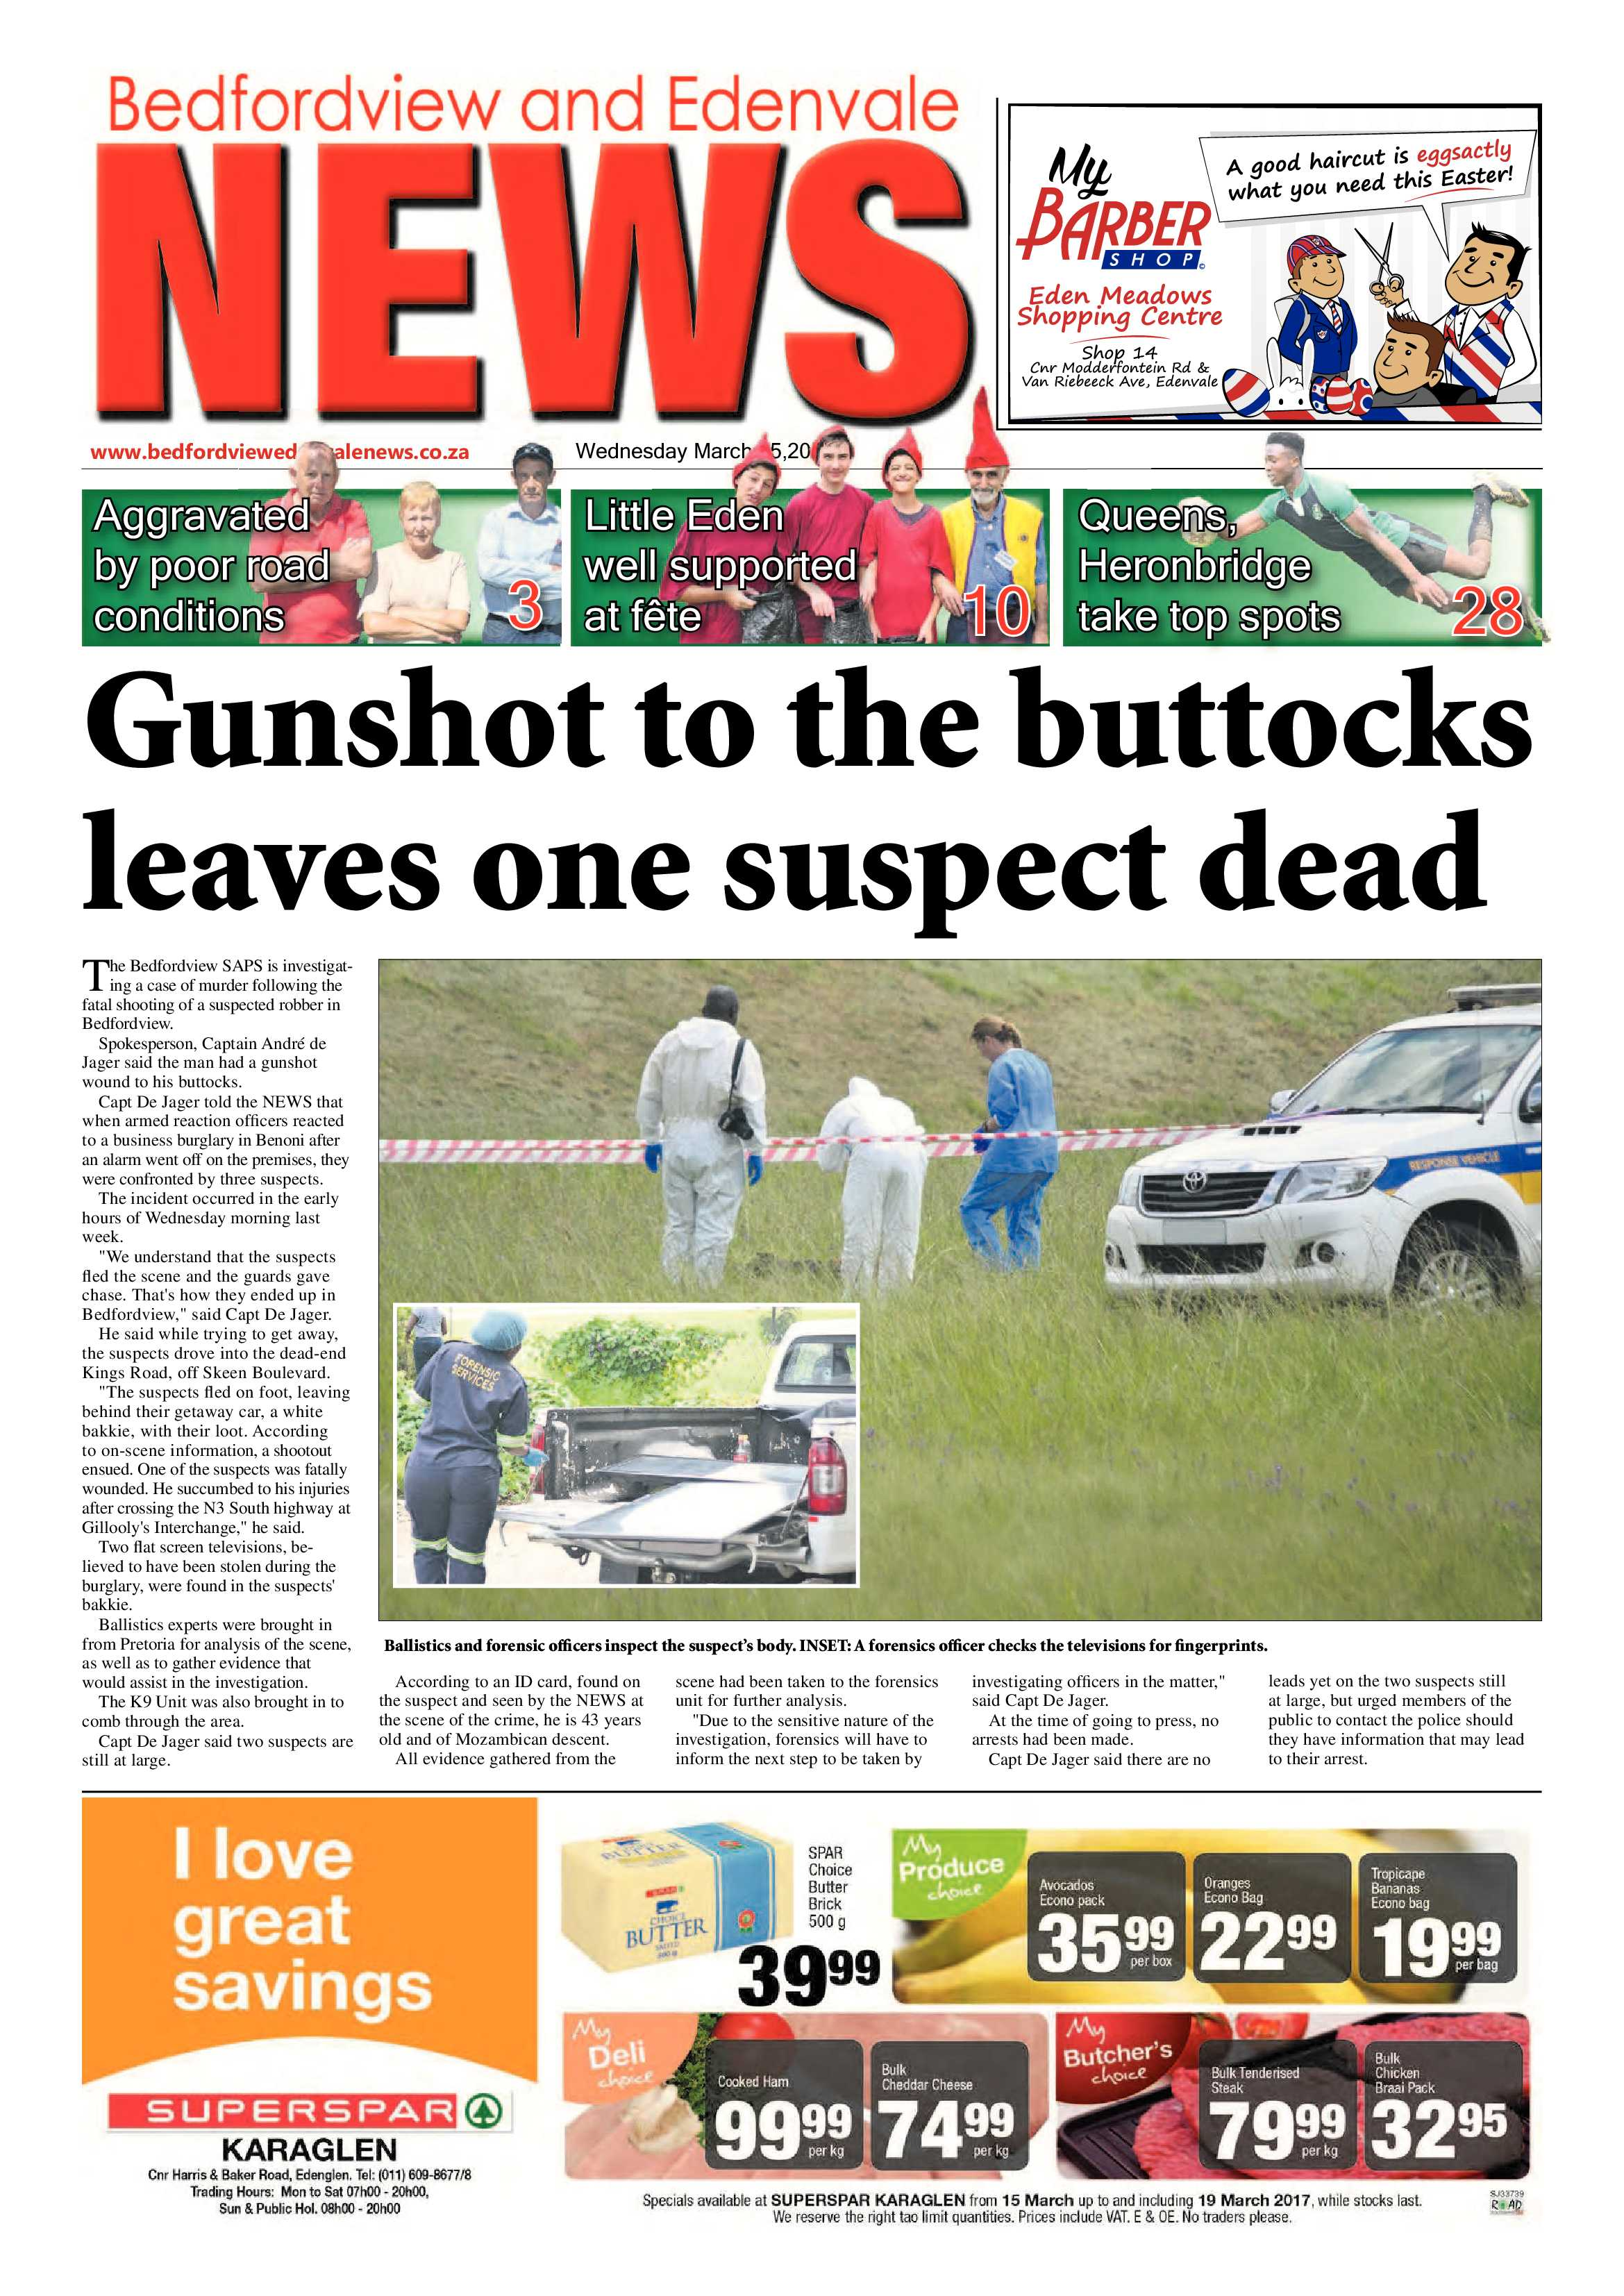 bedfordview-edenvale-news-15-march-2017-epapers-page-1